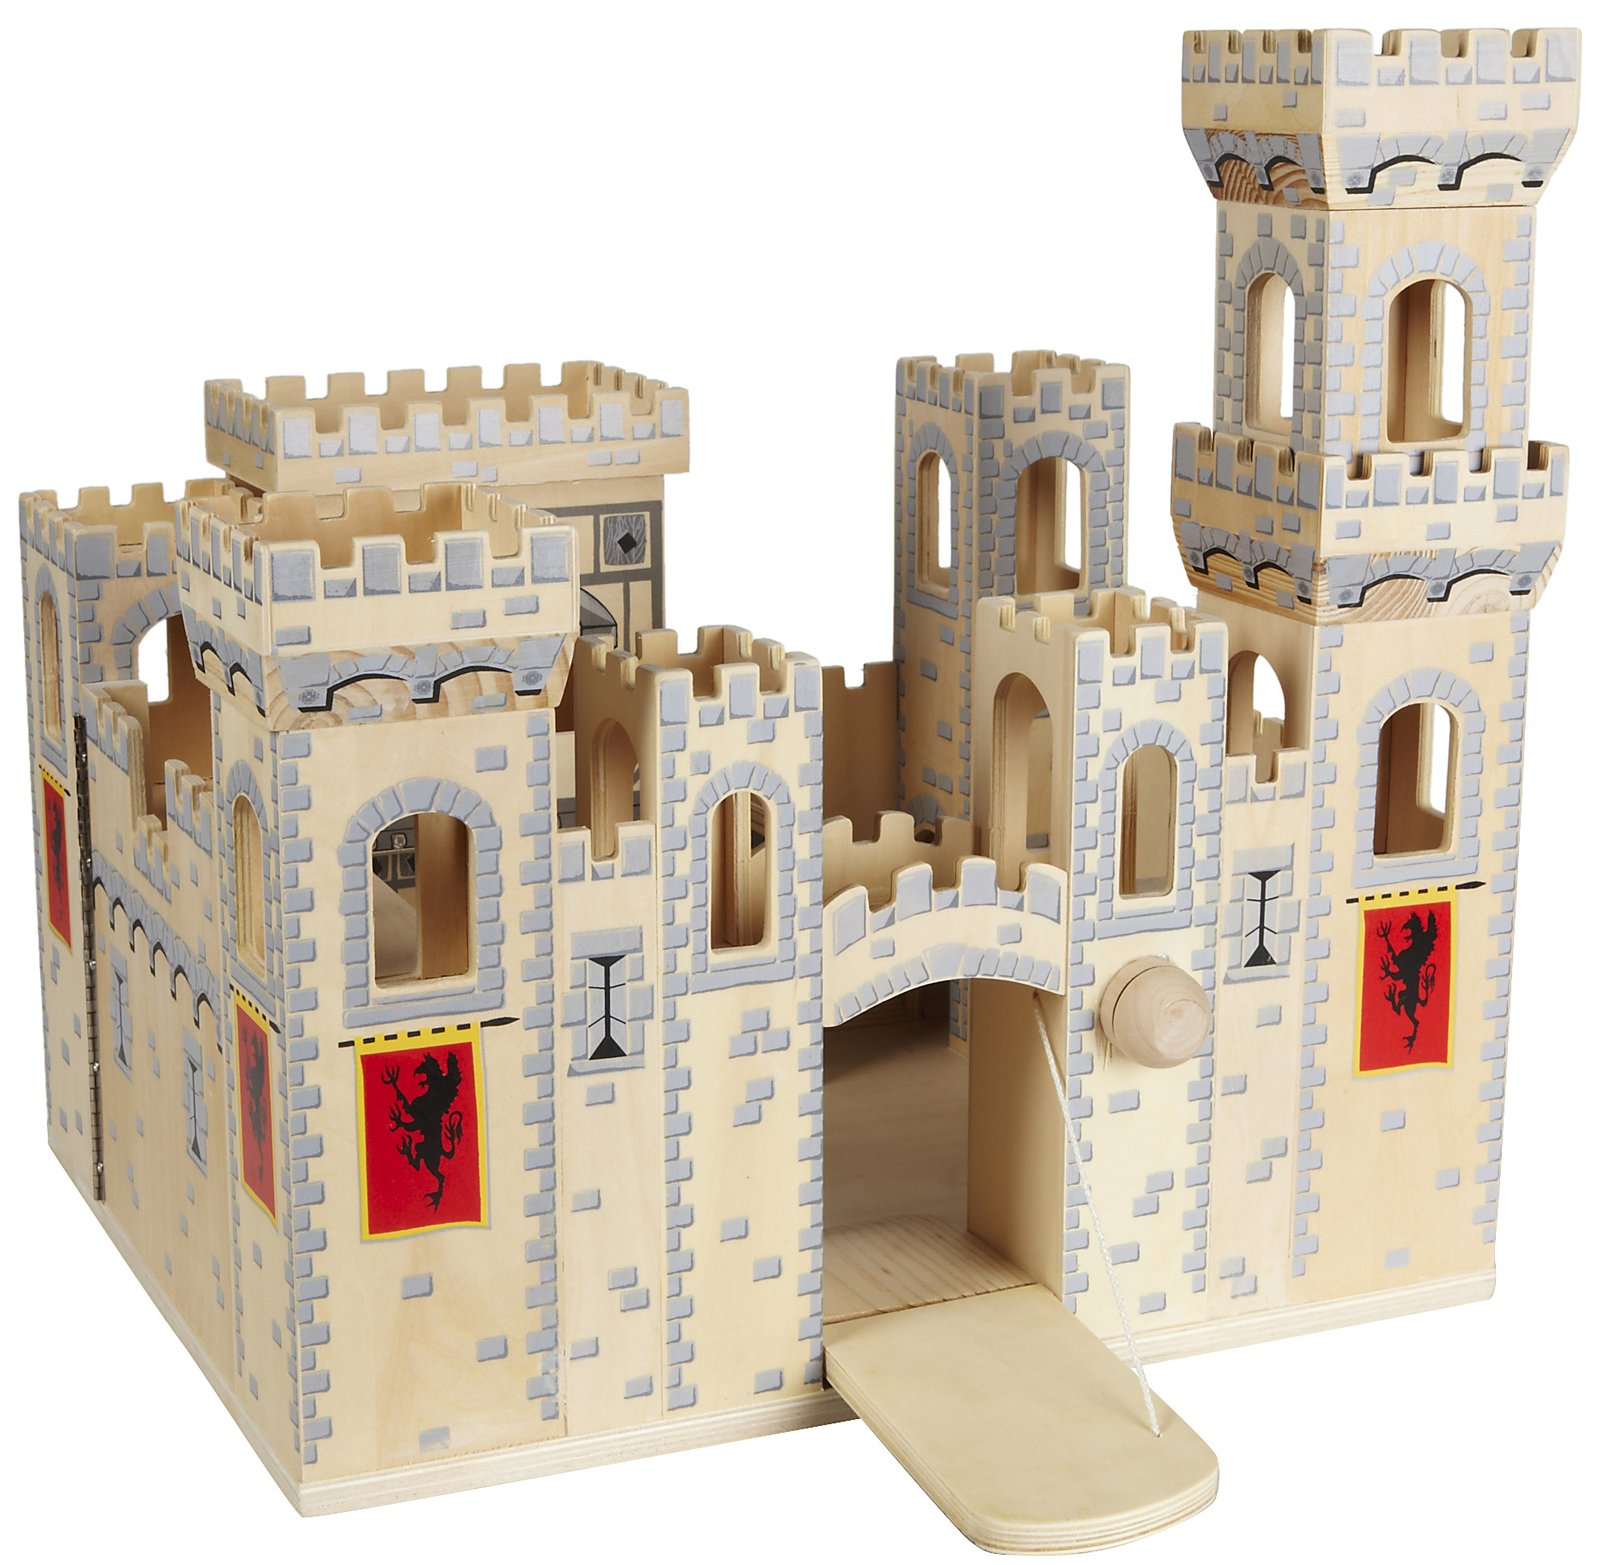 Toy Castles For Toddler Boys : Play castles for boys